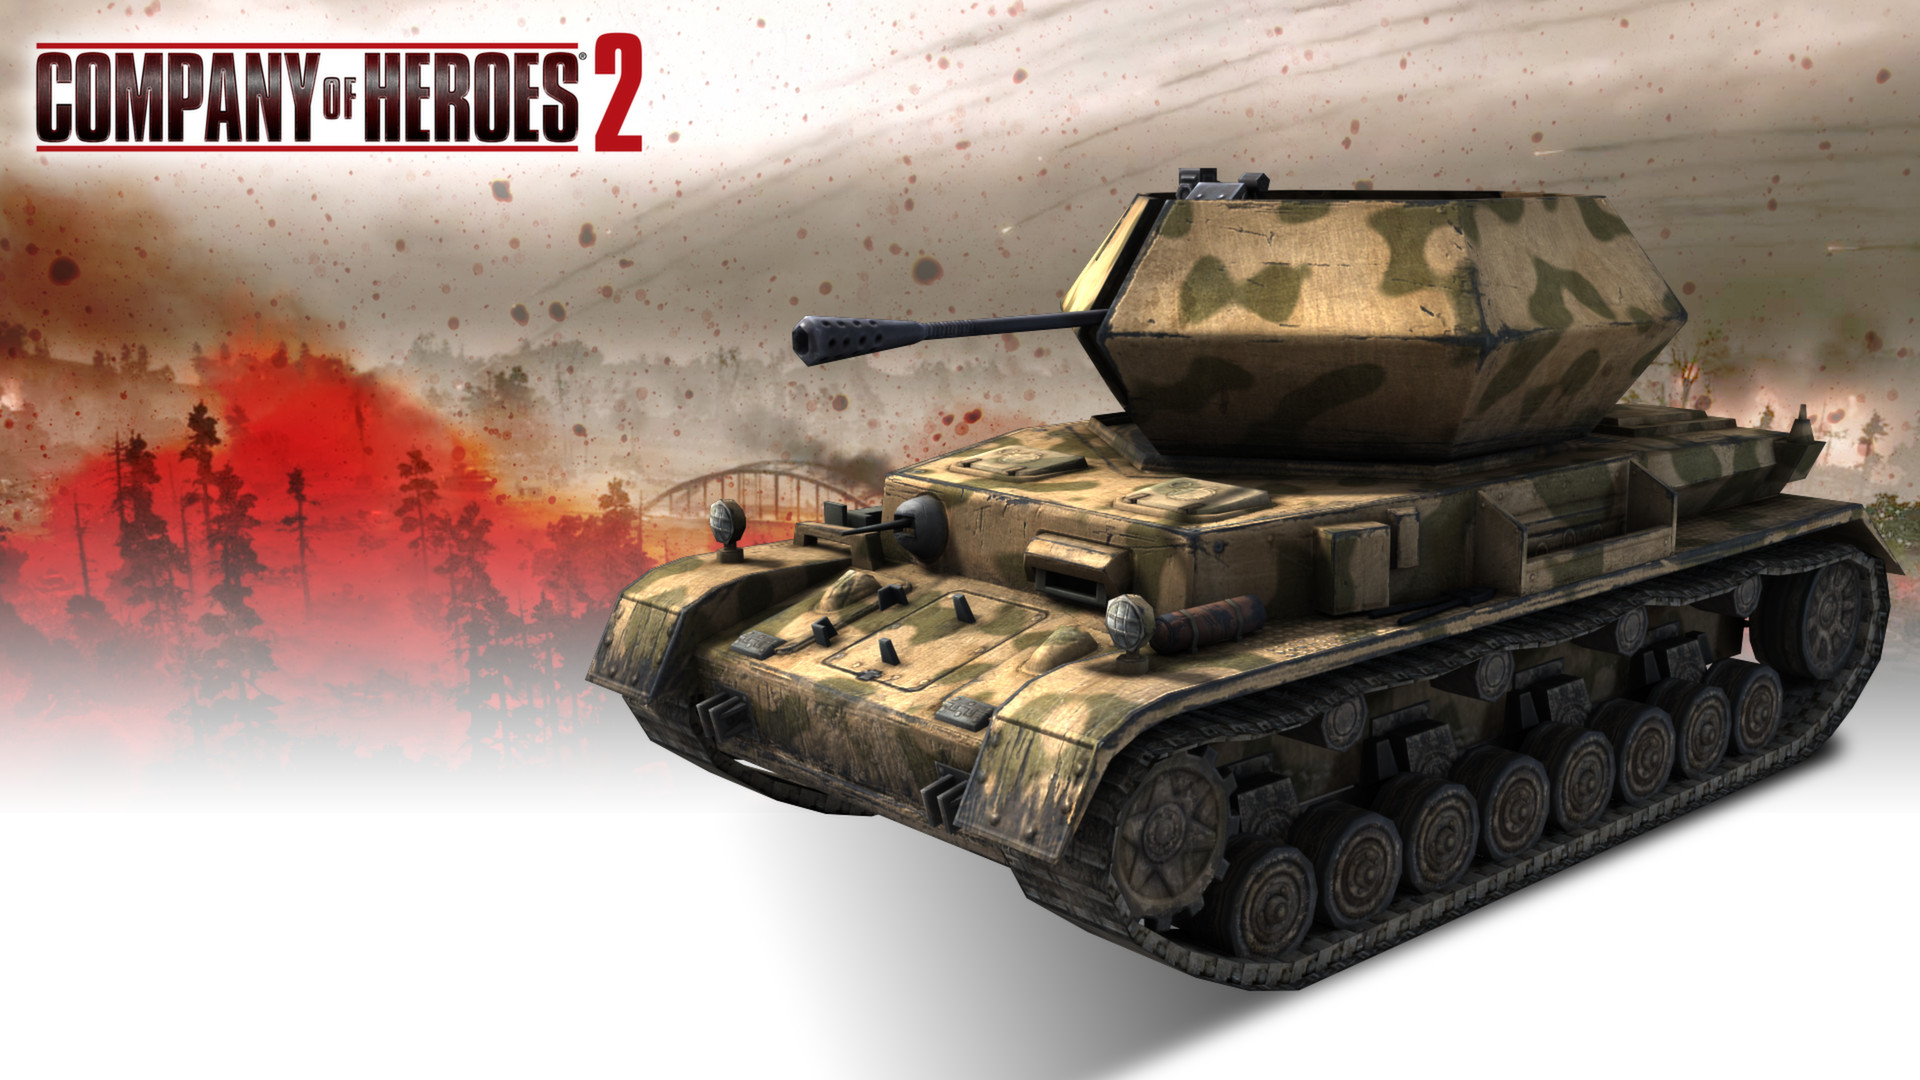 Coh 2 Case Blue : Company of heroes case blue dlc retreat at the don general